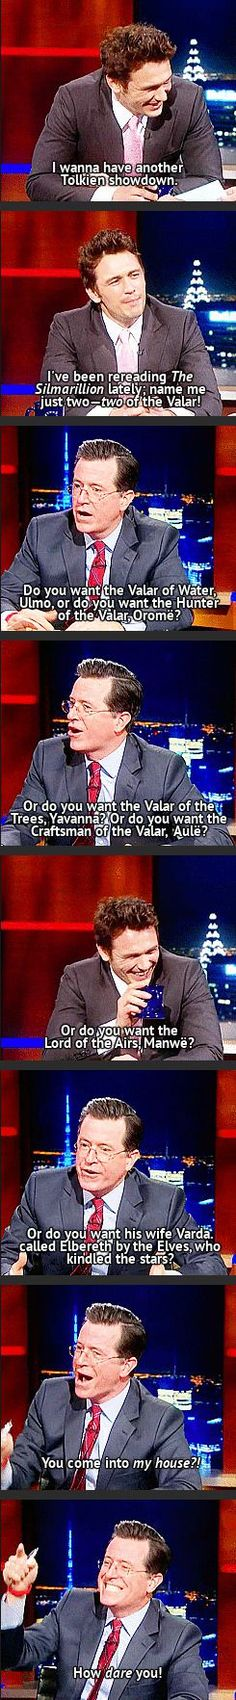 Colbert and the Lord of the Rings.